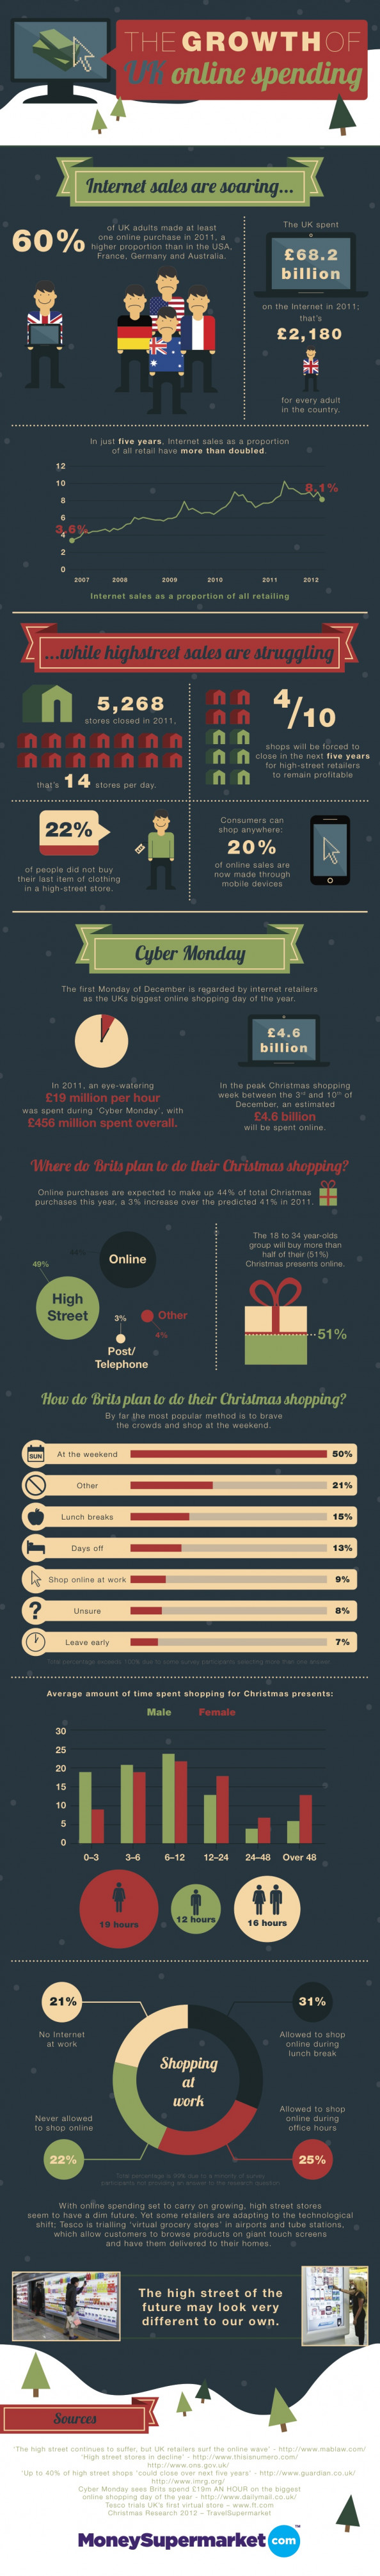 The Growth of UK Online Spending Infographic